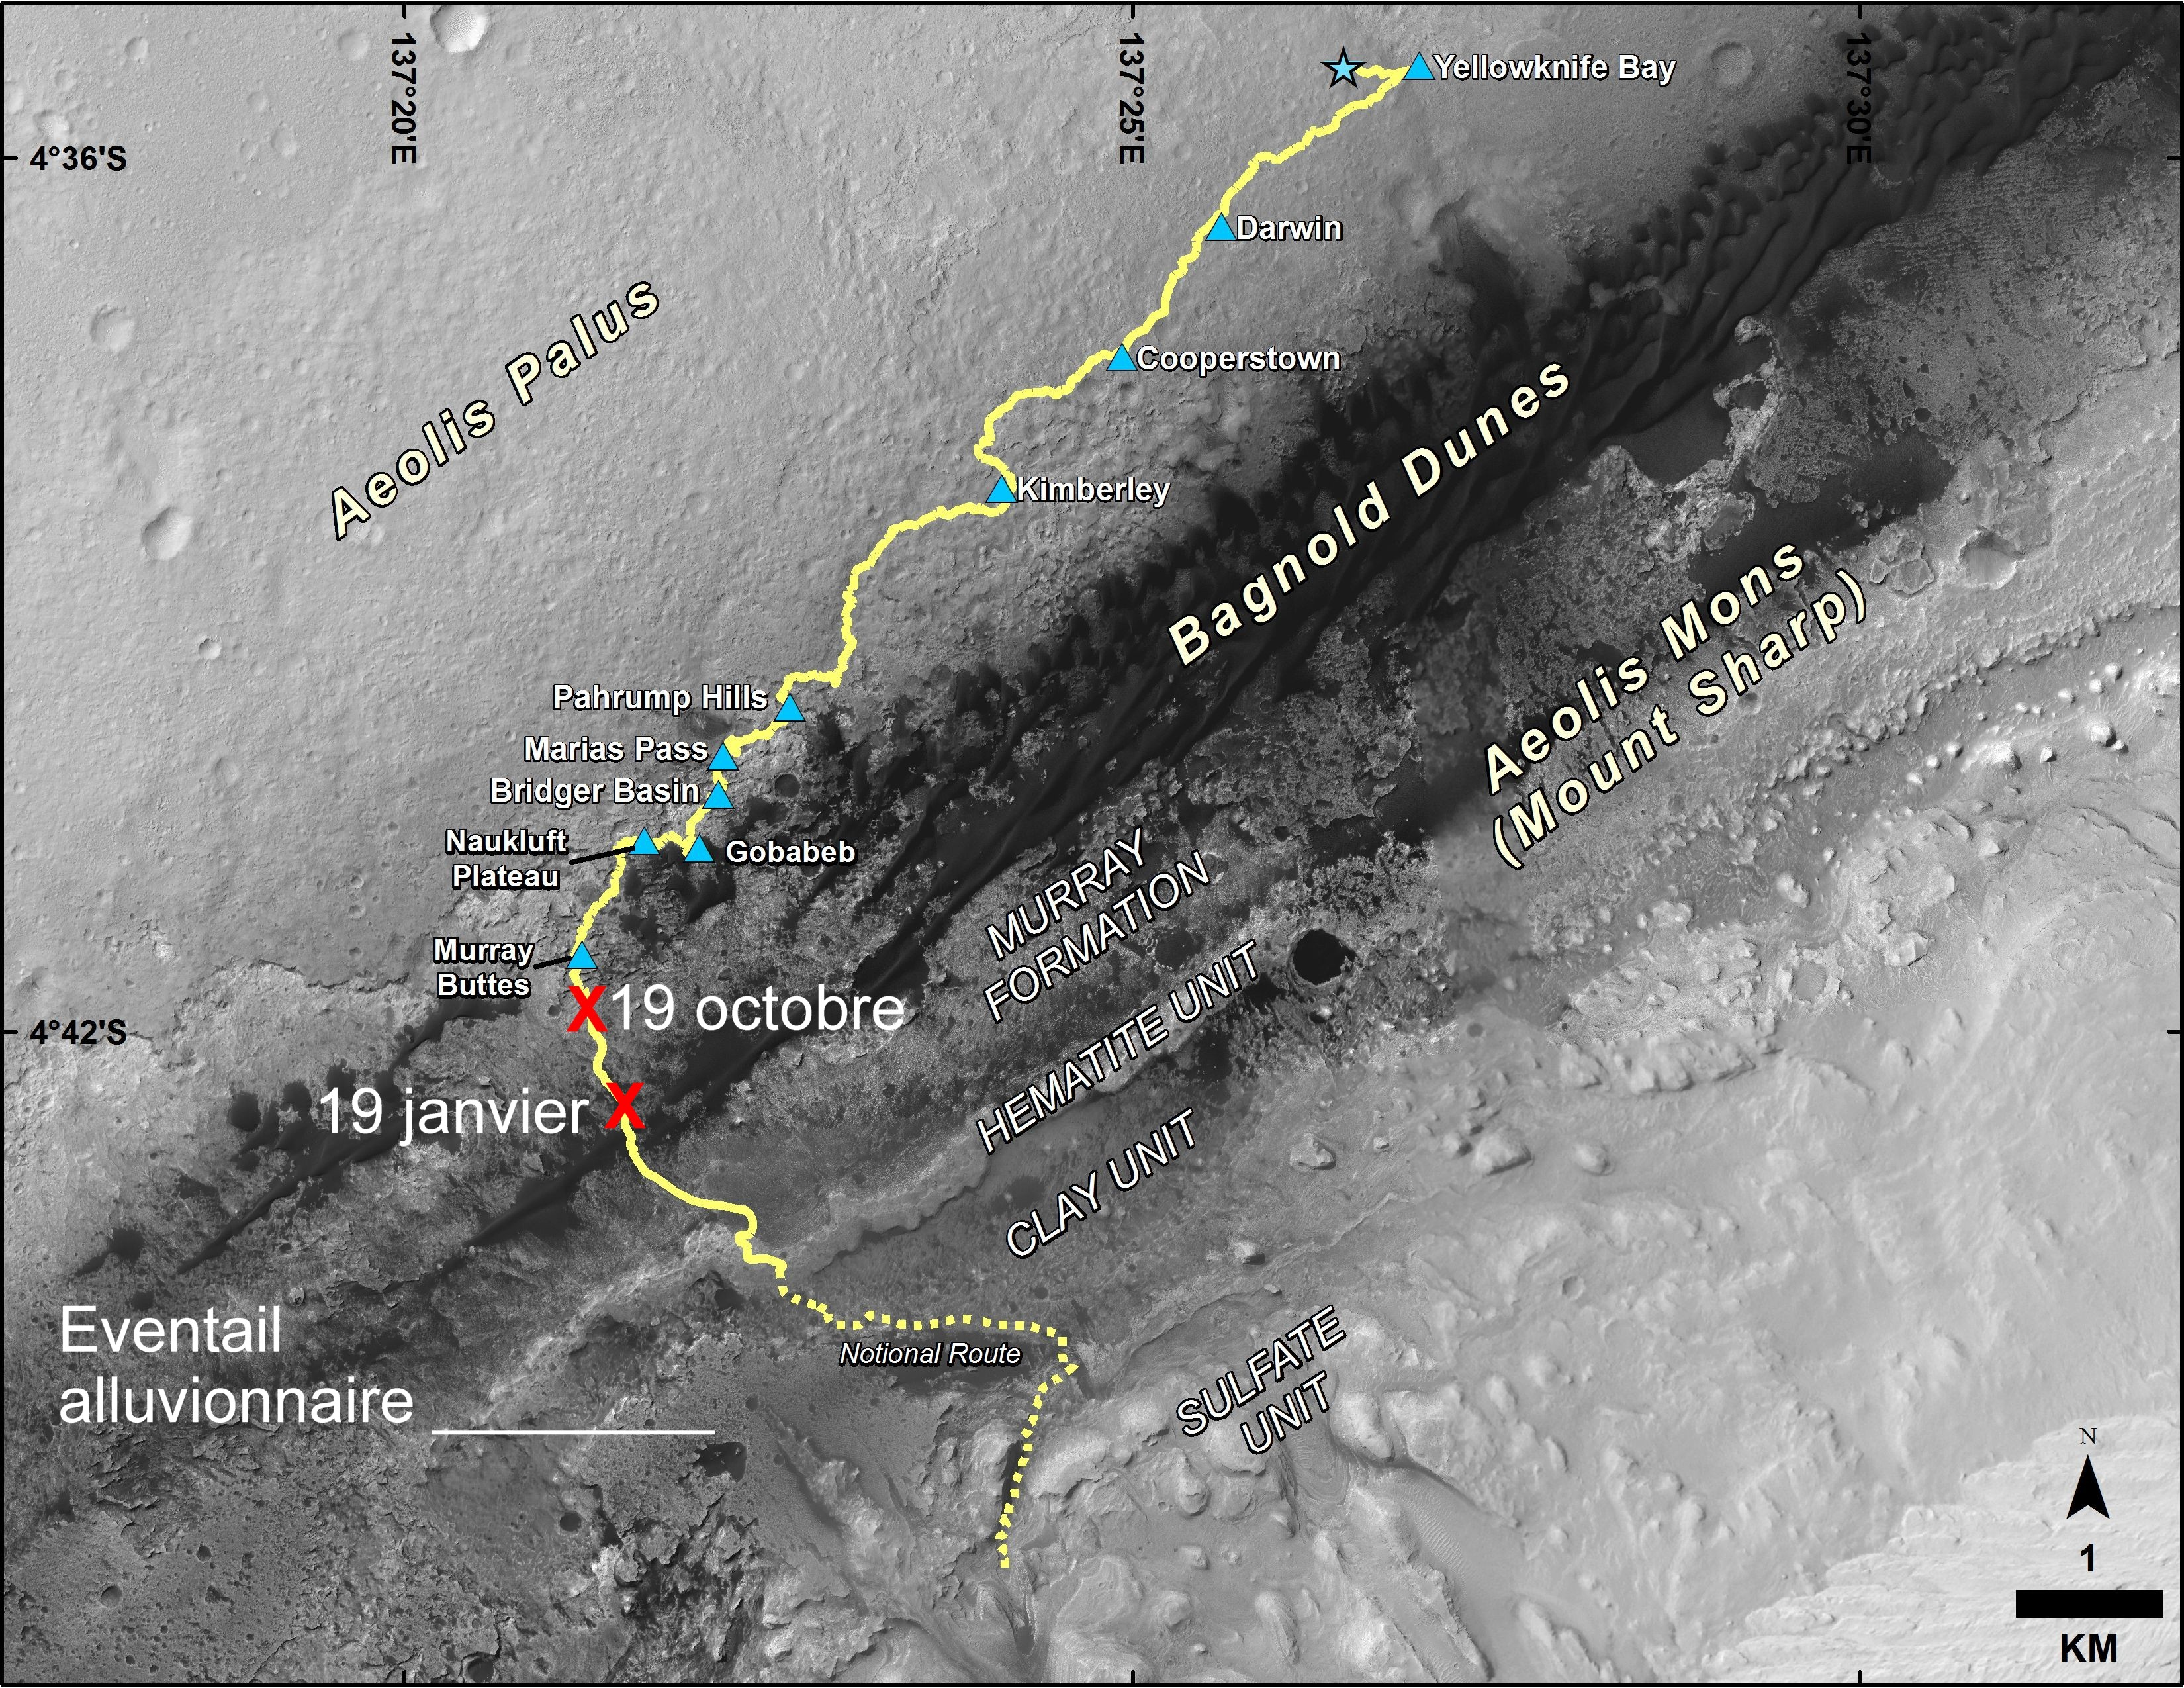 msl-curiosity-mount-sharp-route-traverse-pia20846-full-rens-16 10 19 01